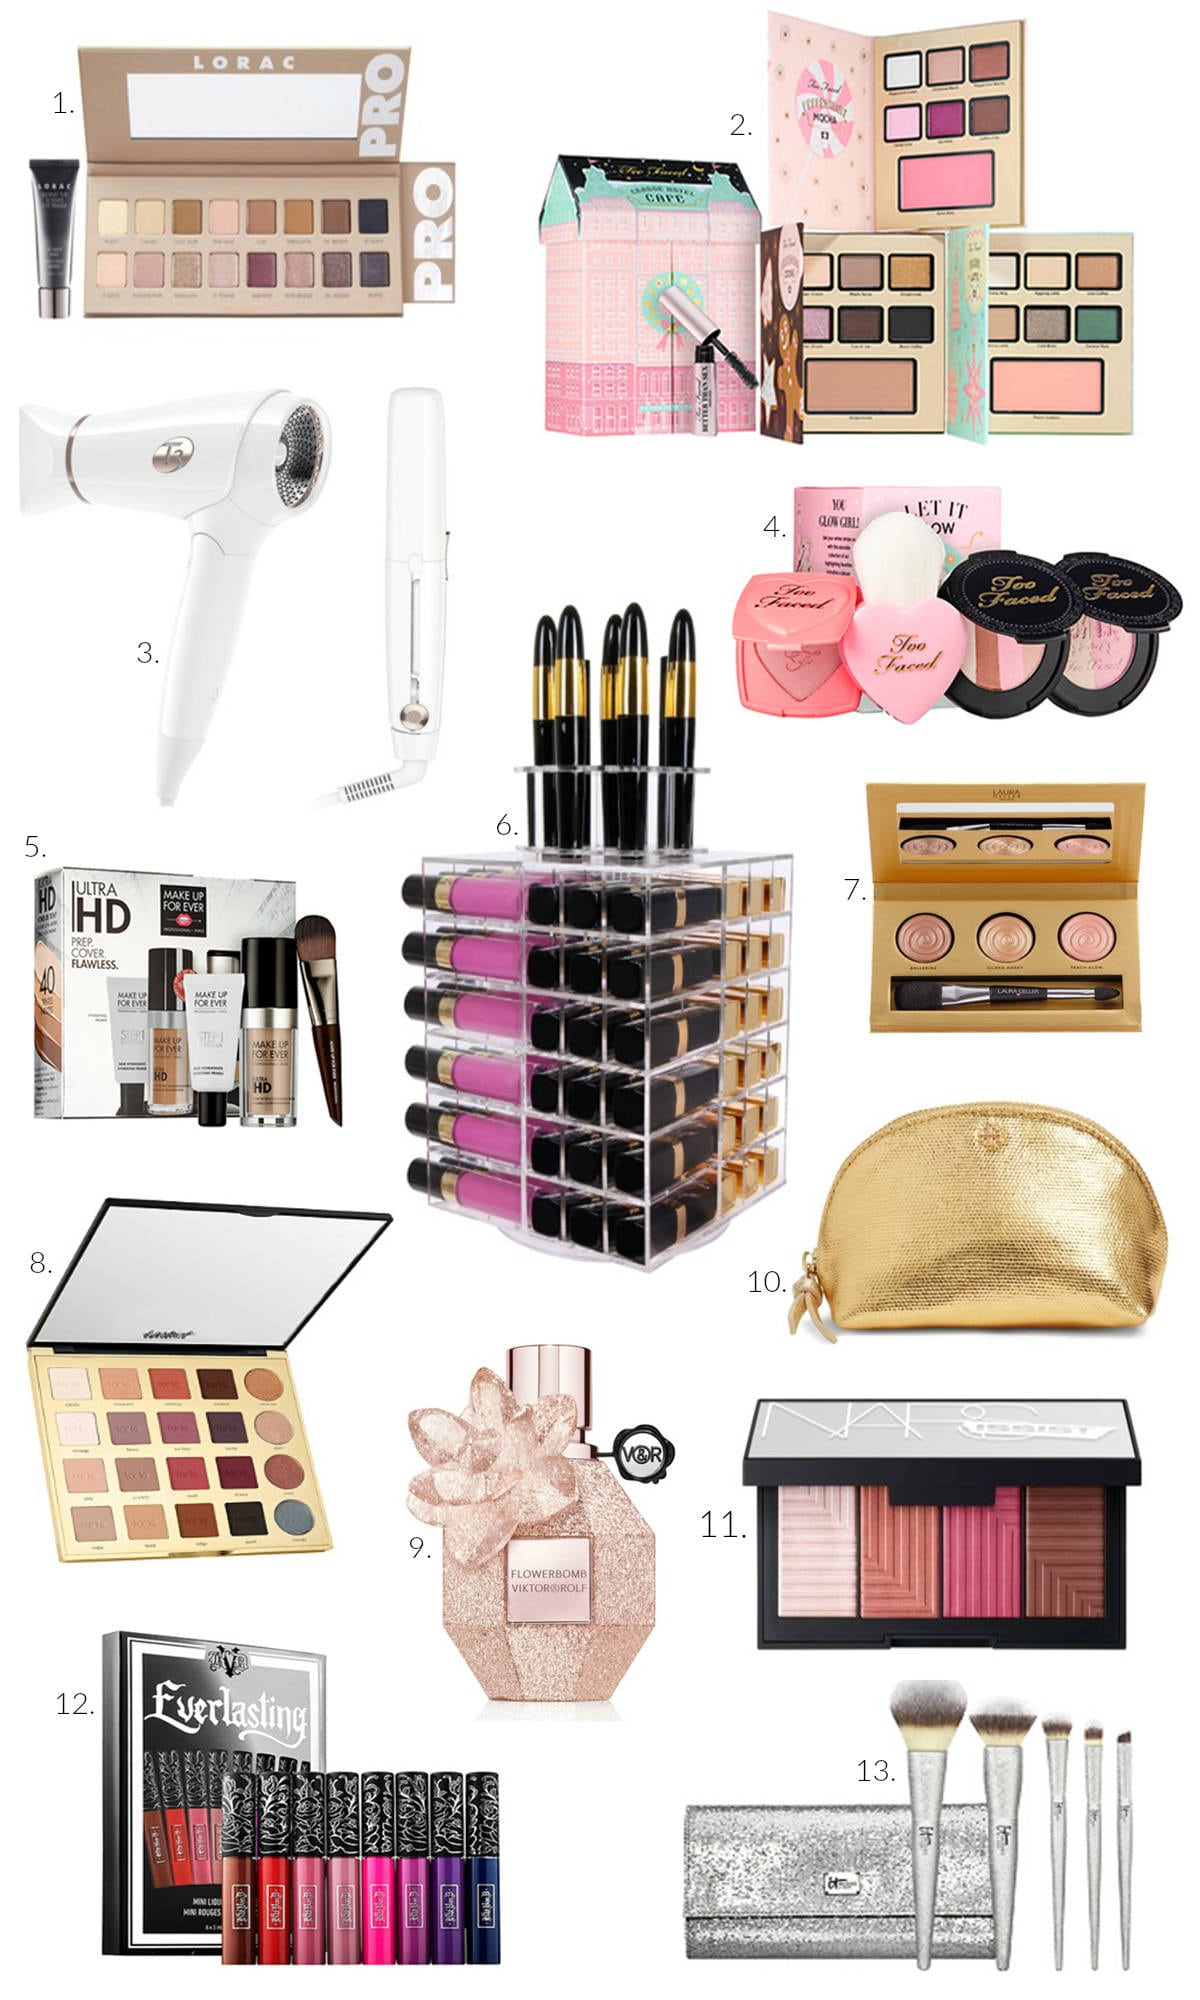 best affordable Christmas gifts for the beauty lover | makeup organizer | best curling wand and hairdryer | blush palette | best perfume for mom | contour palette | cheap stocking stuffers